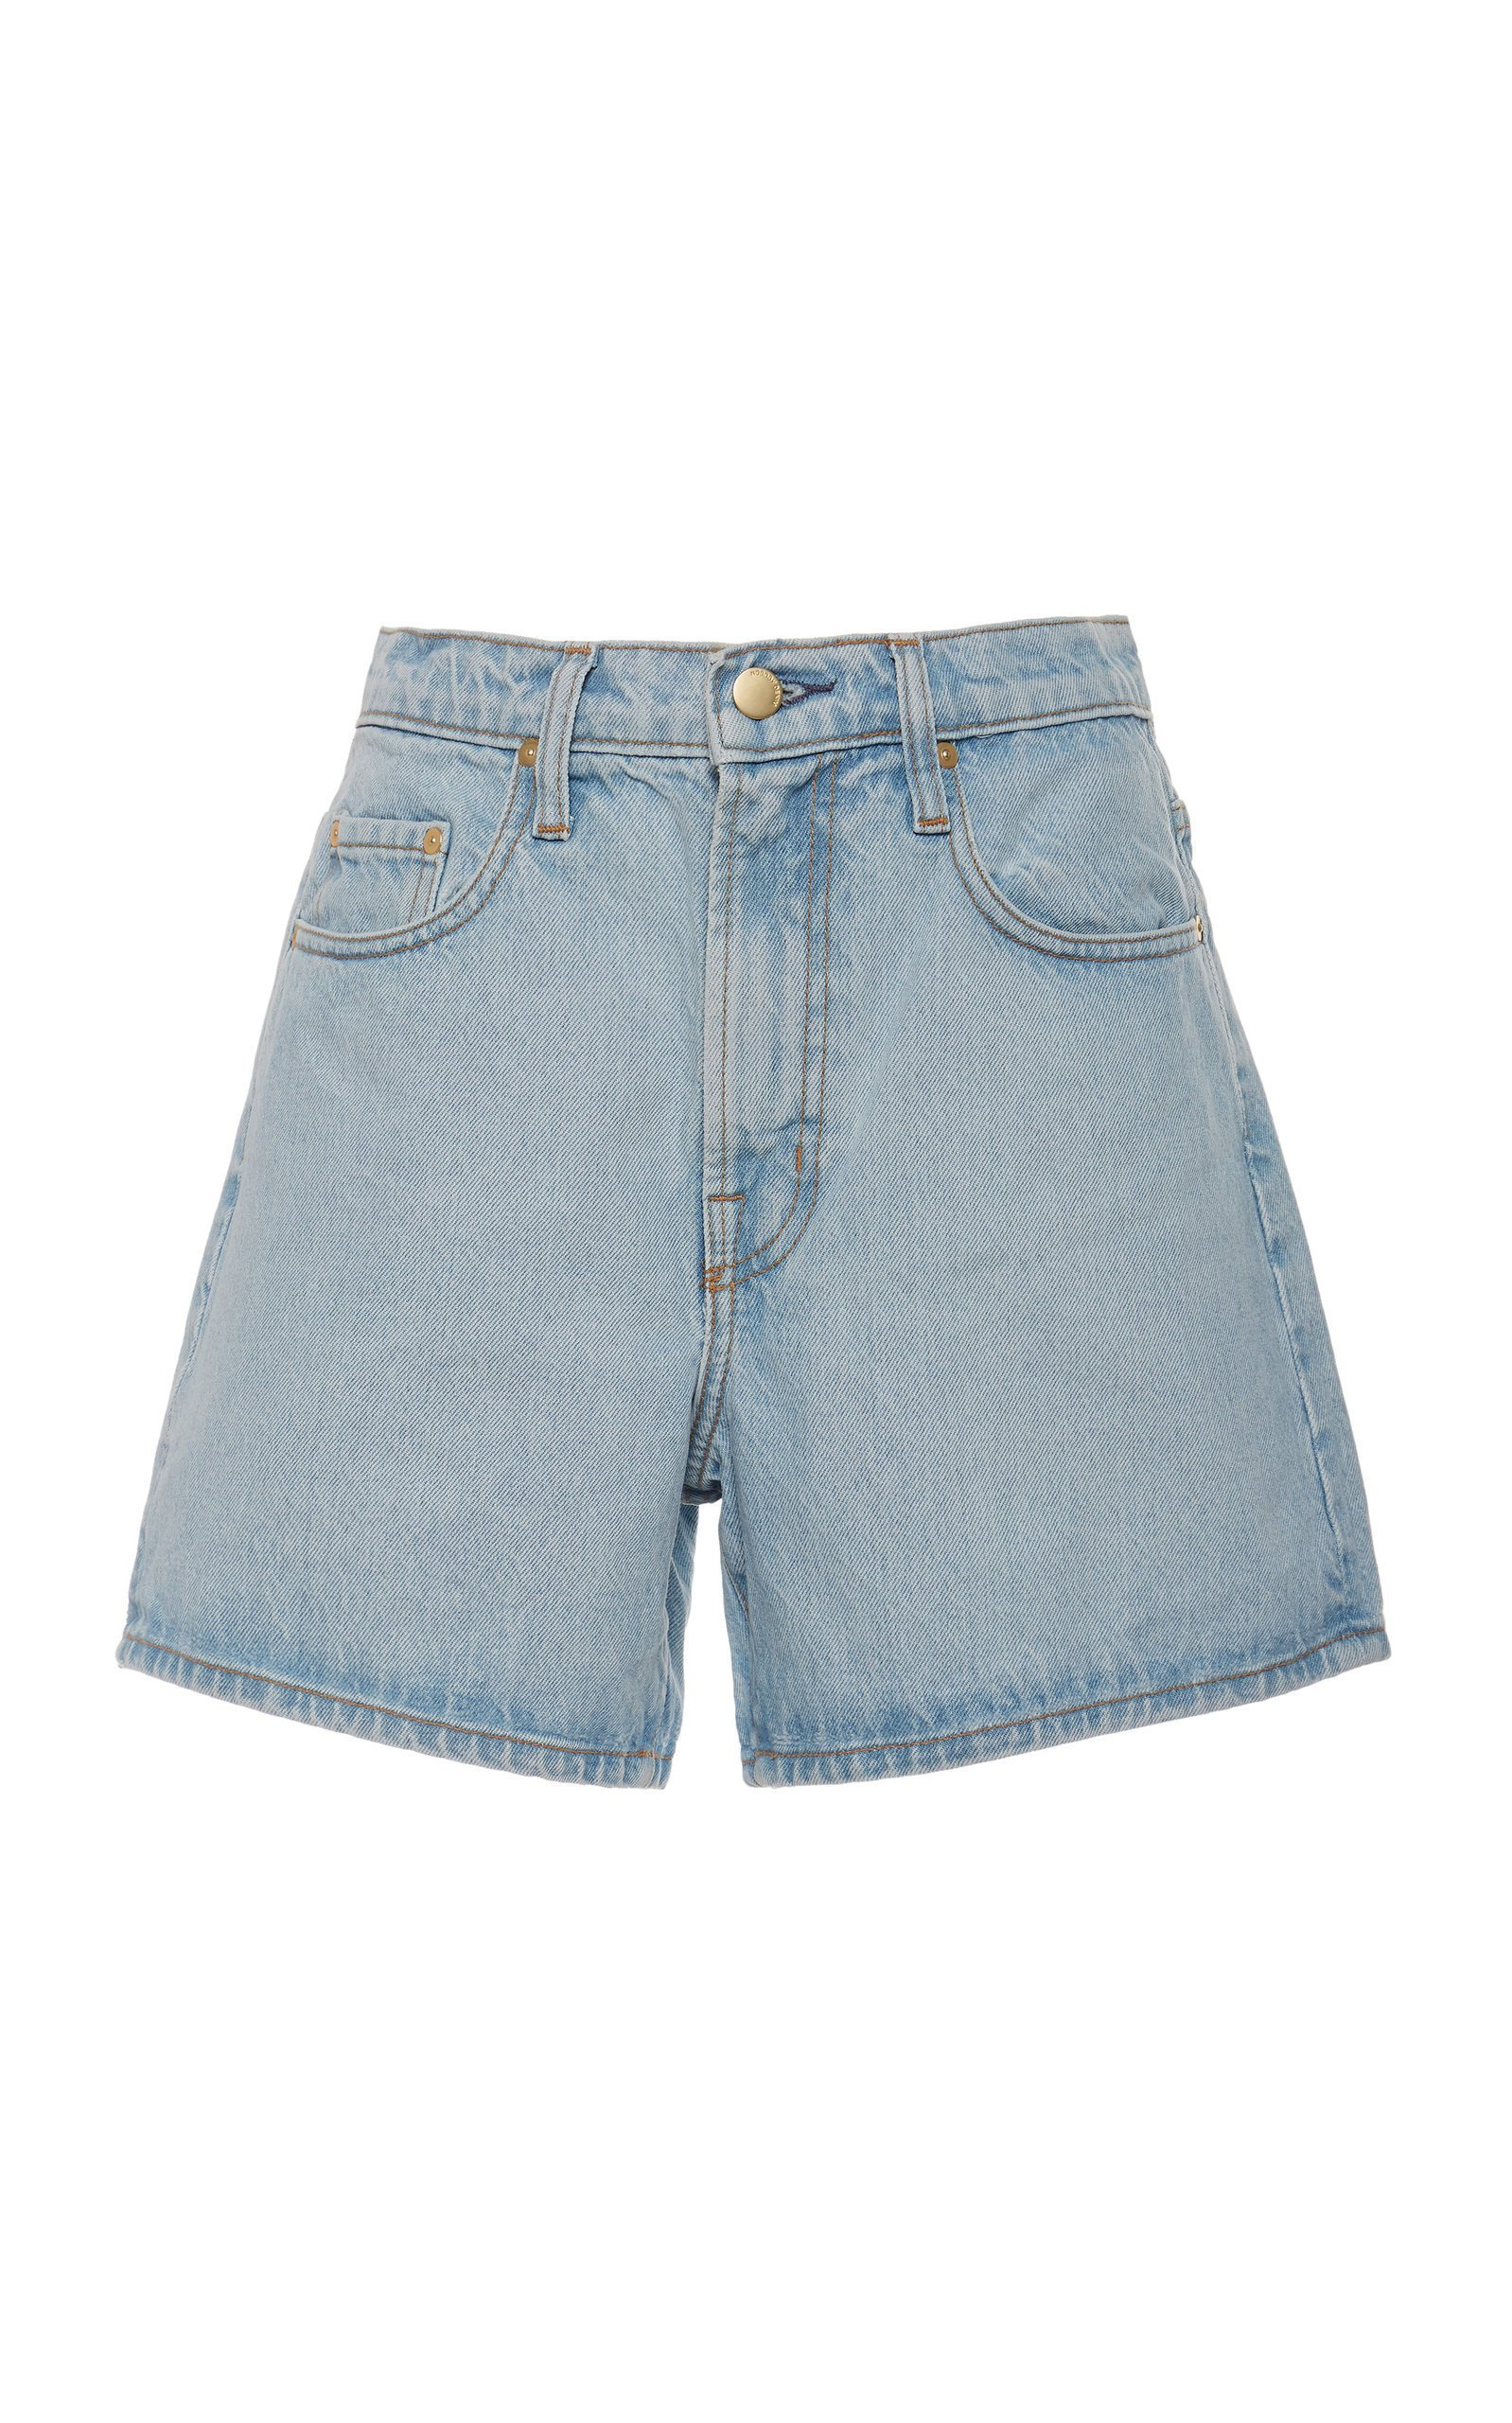 Nobody Denim Stevie High-Rise Denim Shorts Size: 31